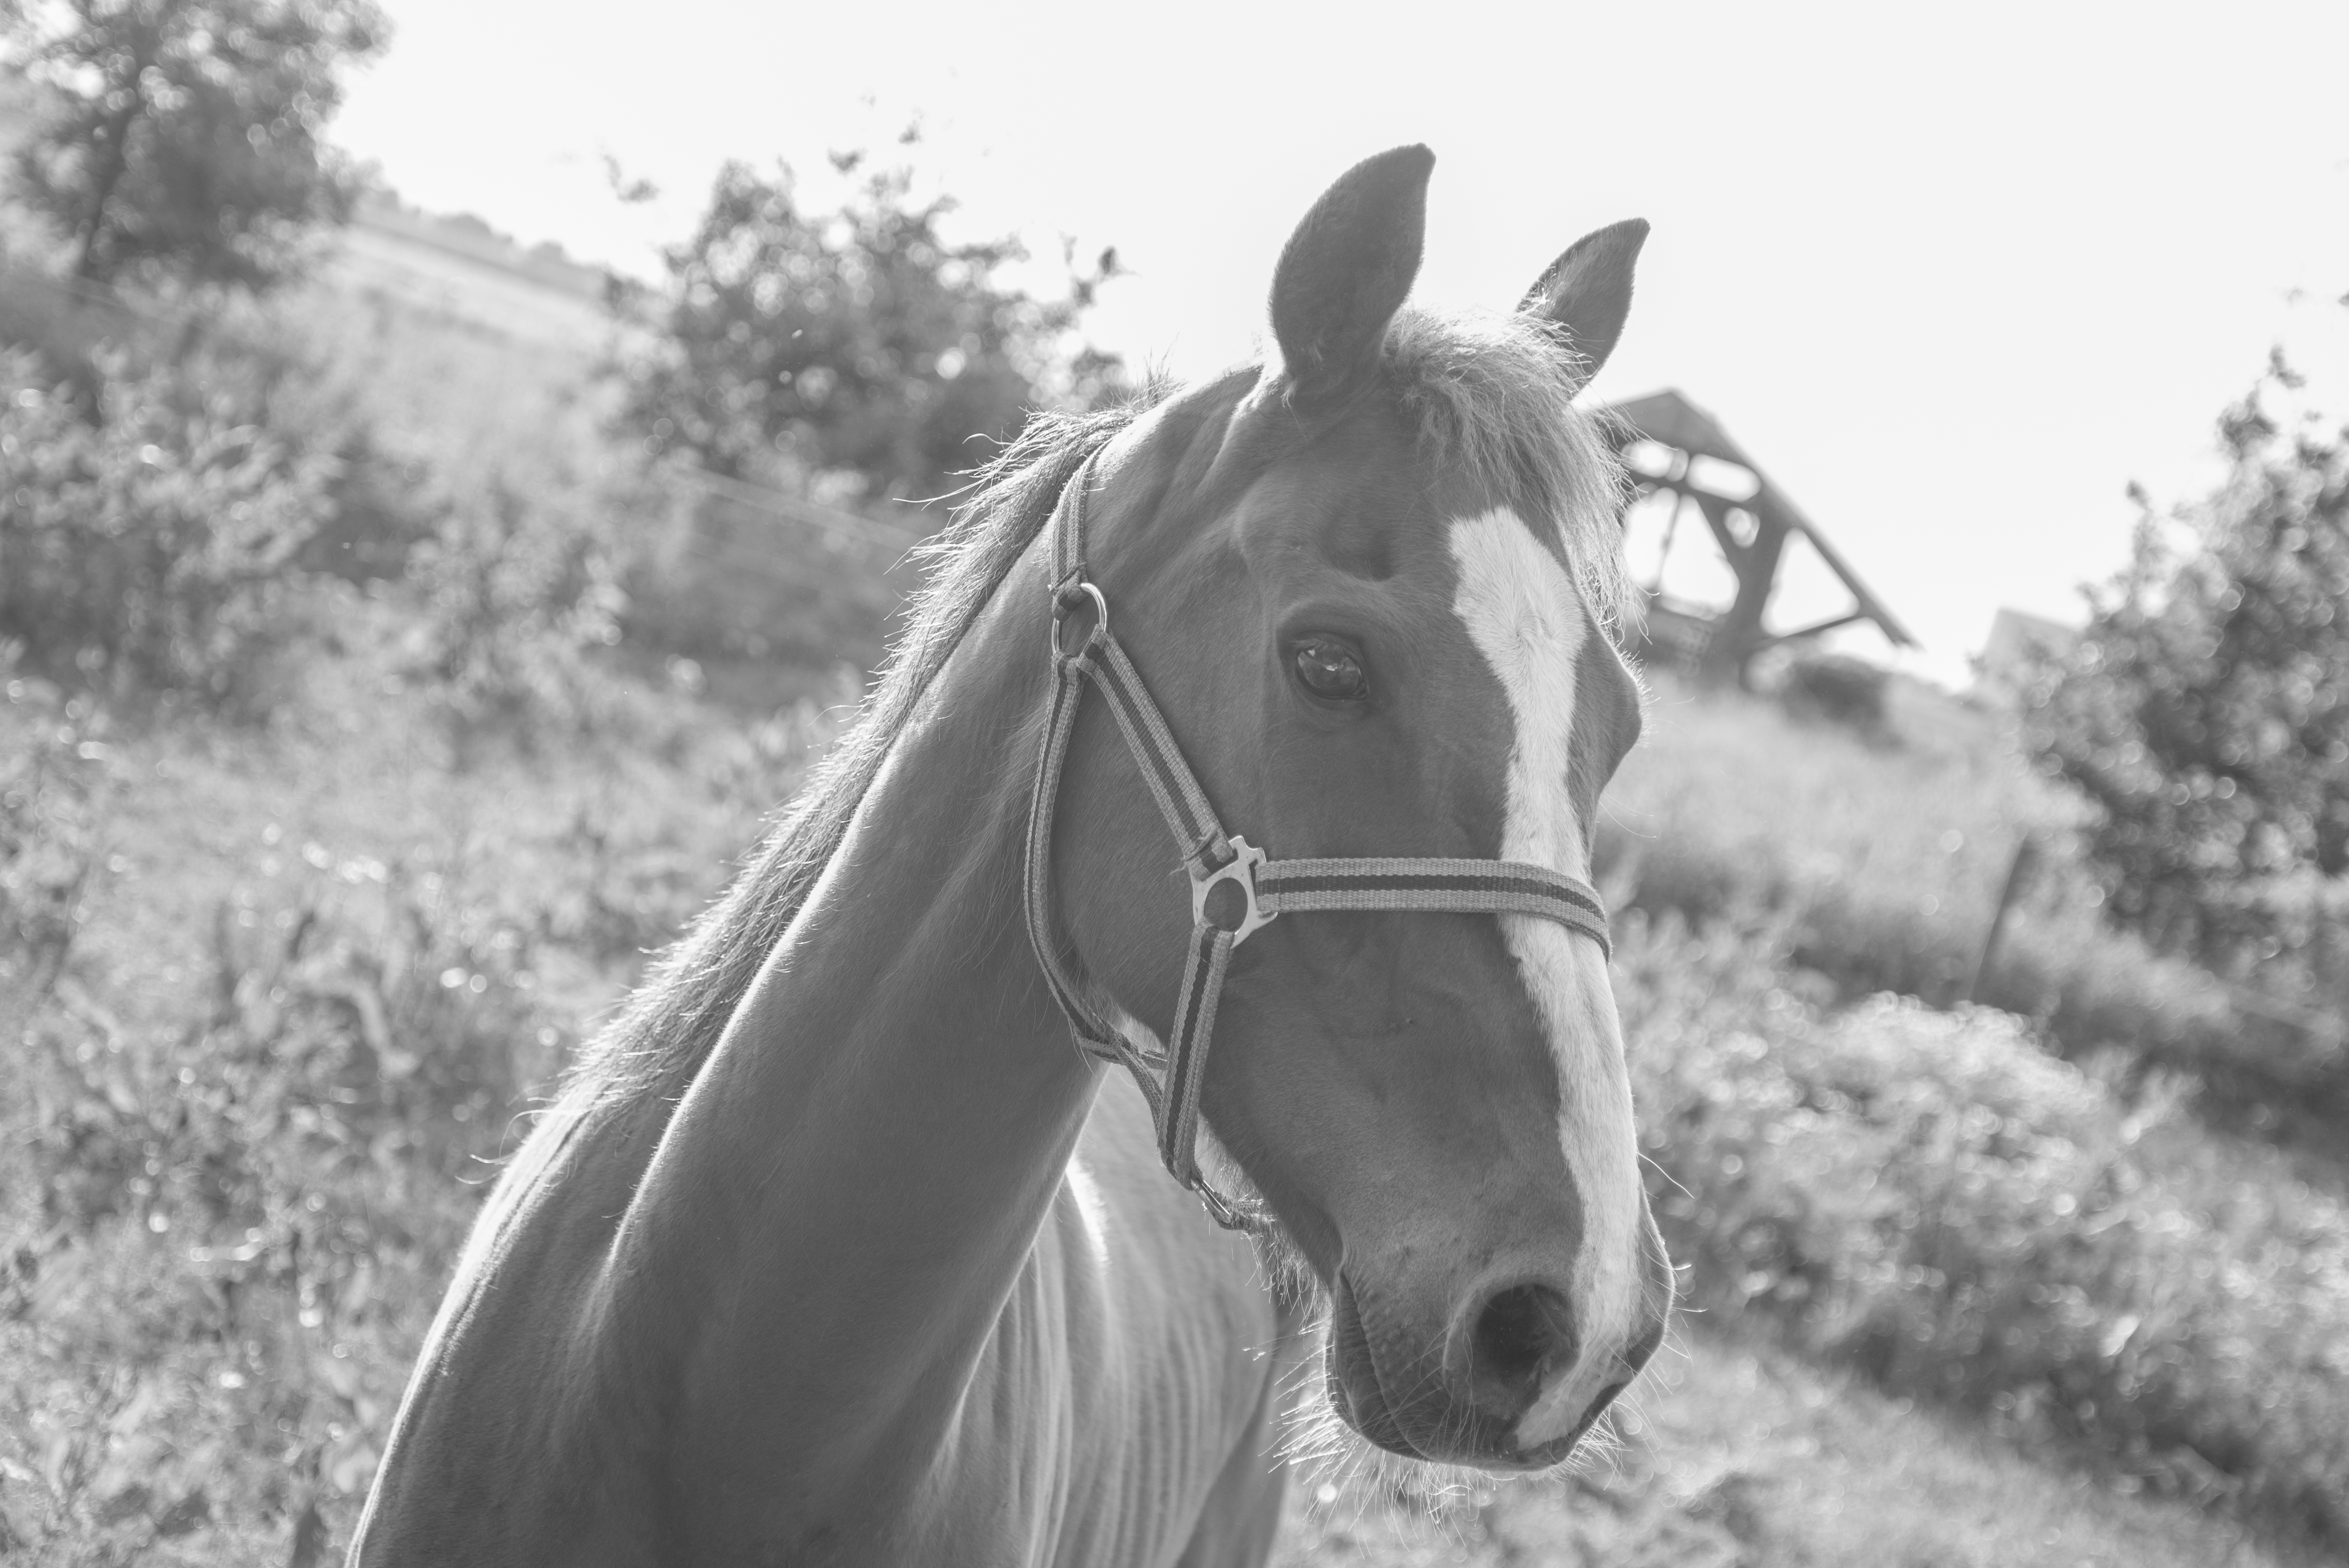 Animal Farm Wallpaper Close Up Photography Of Gray And White Horse 183 Free Stock